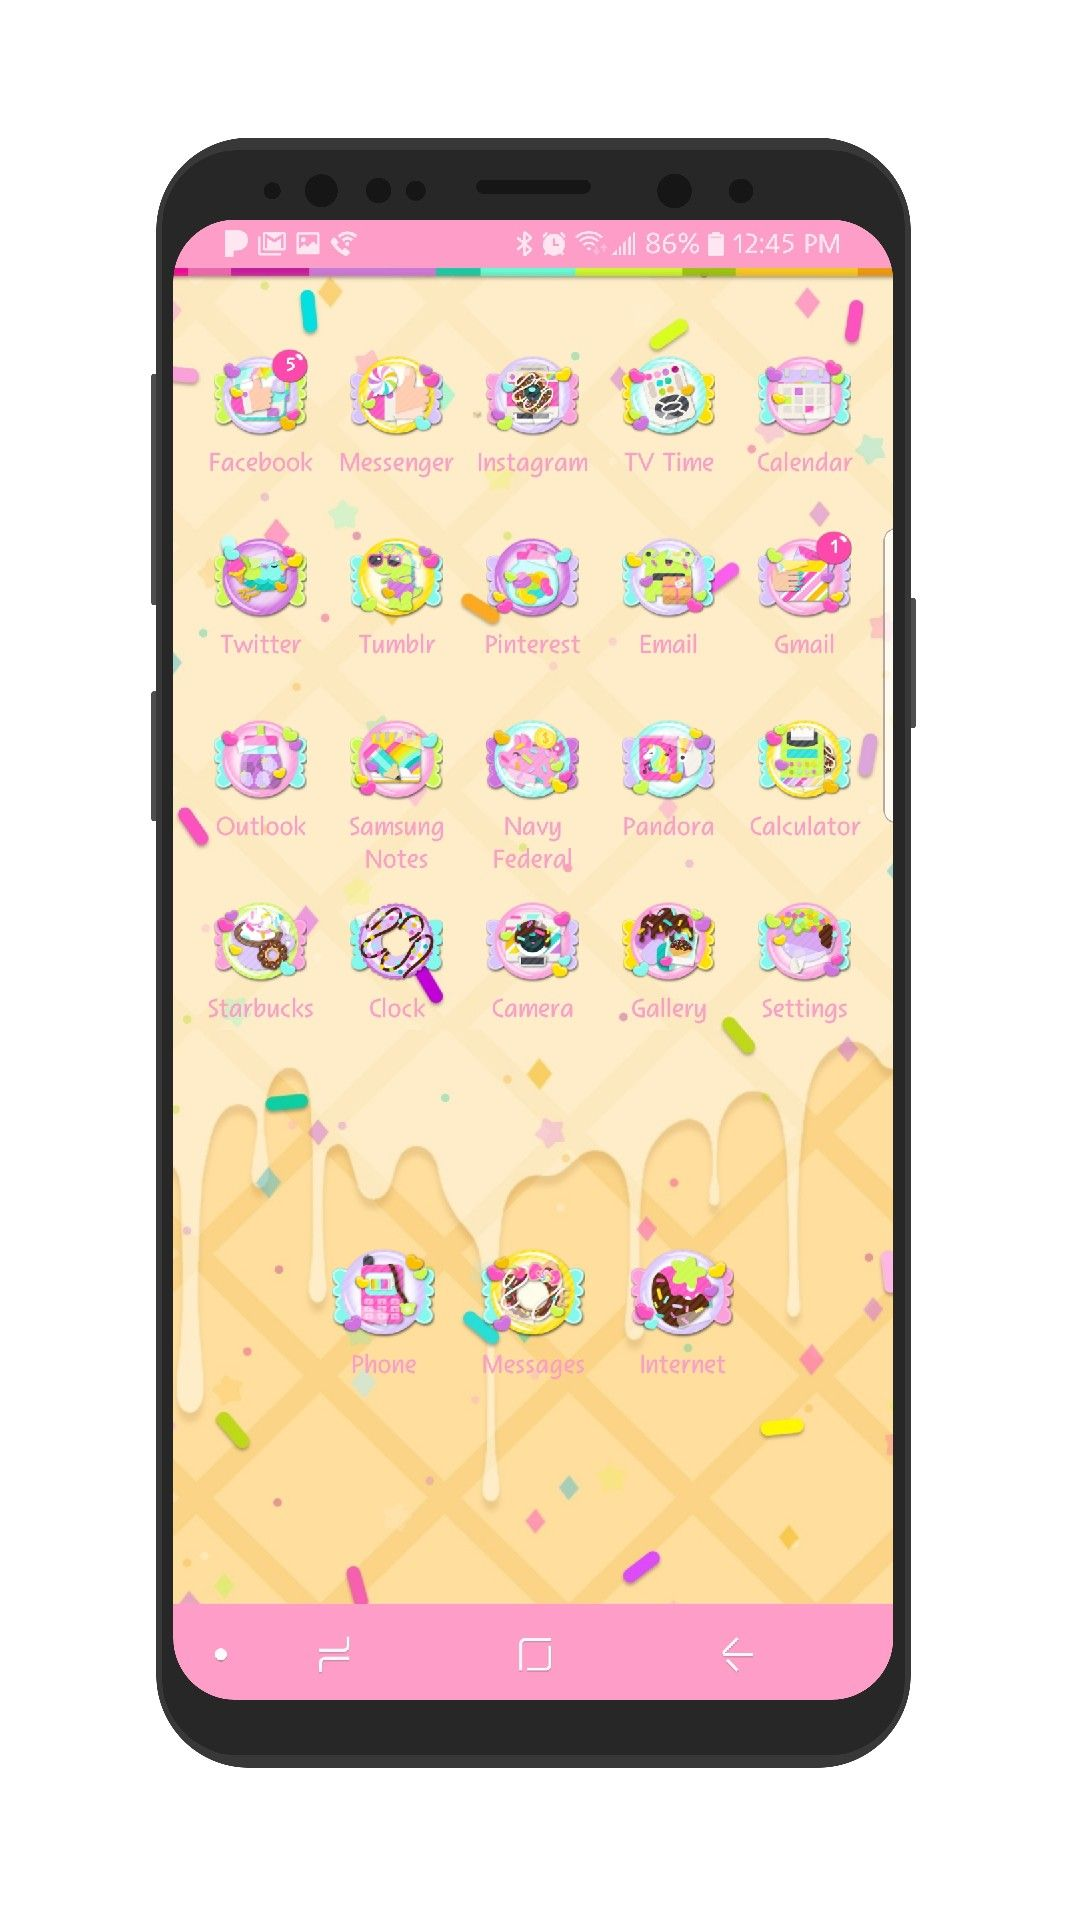 Image by Darling on Samsung Cute themes, Theme